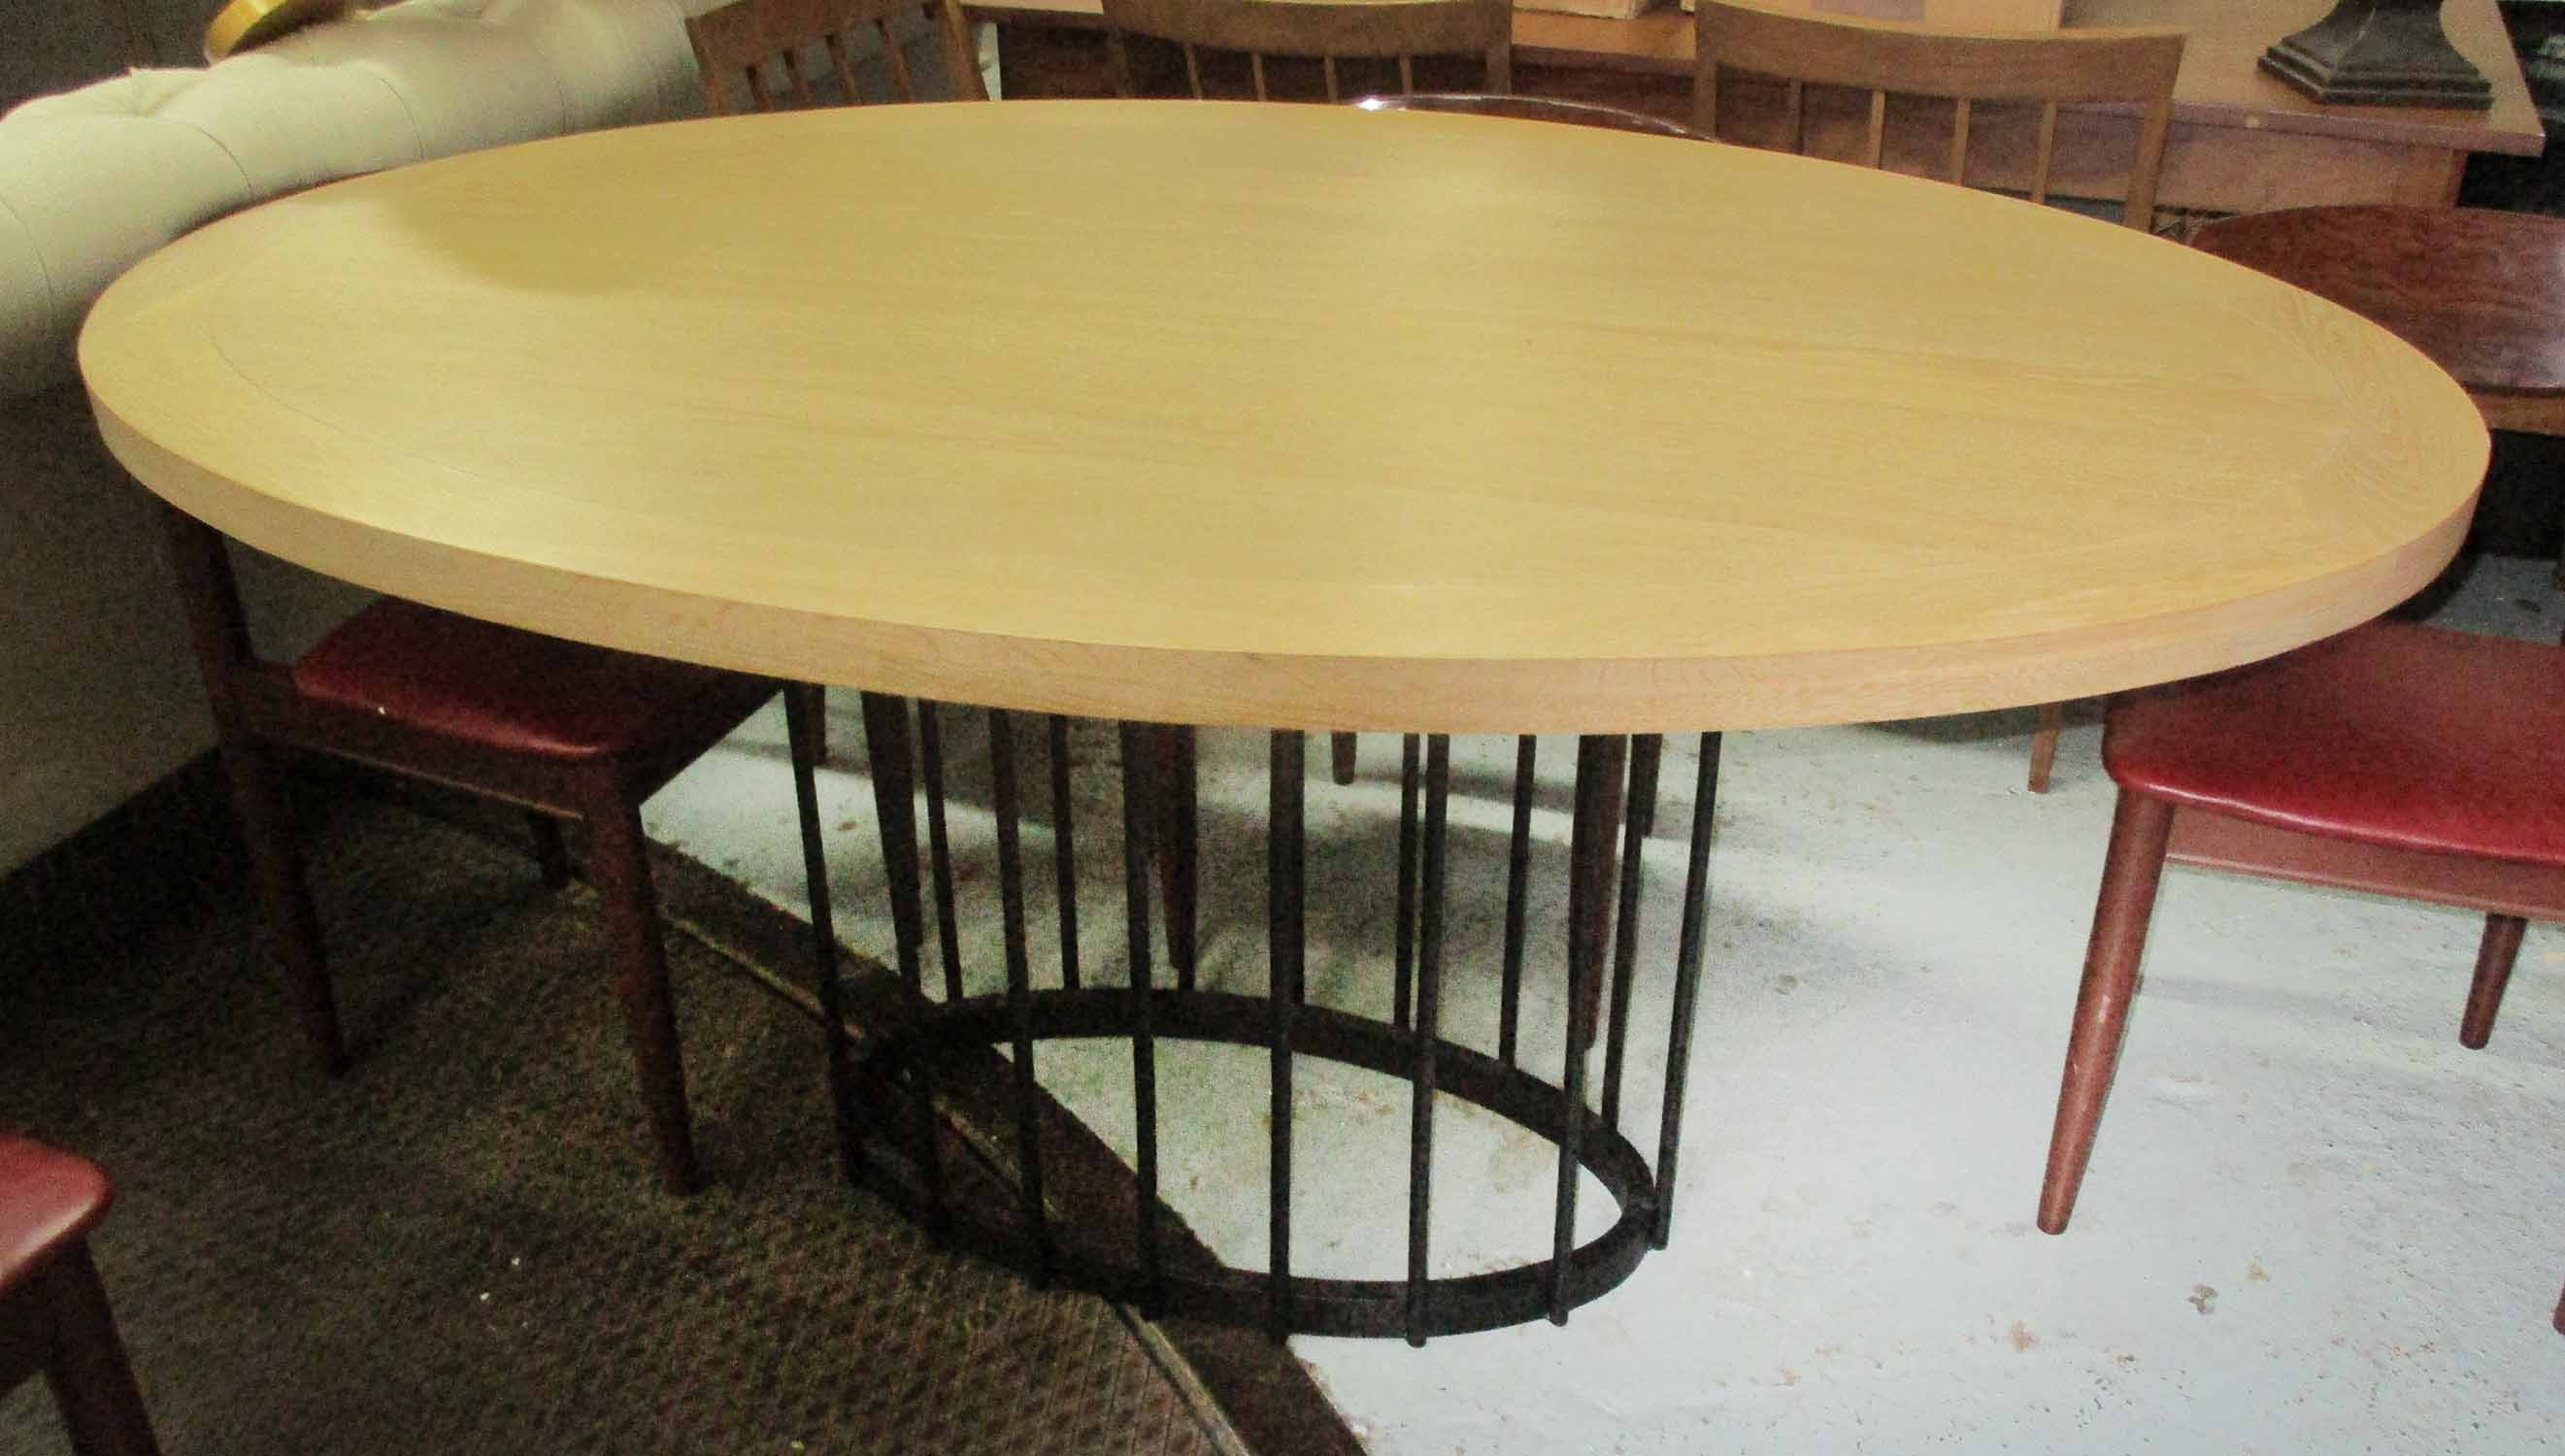 Lot 8 - CENTRE TABLE, the oval wooden top on a metal central base, 160cm x 116cm.